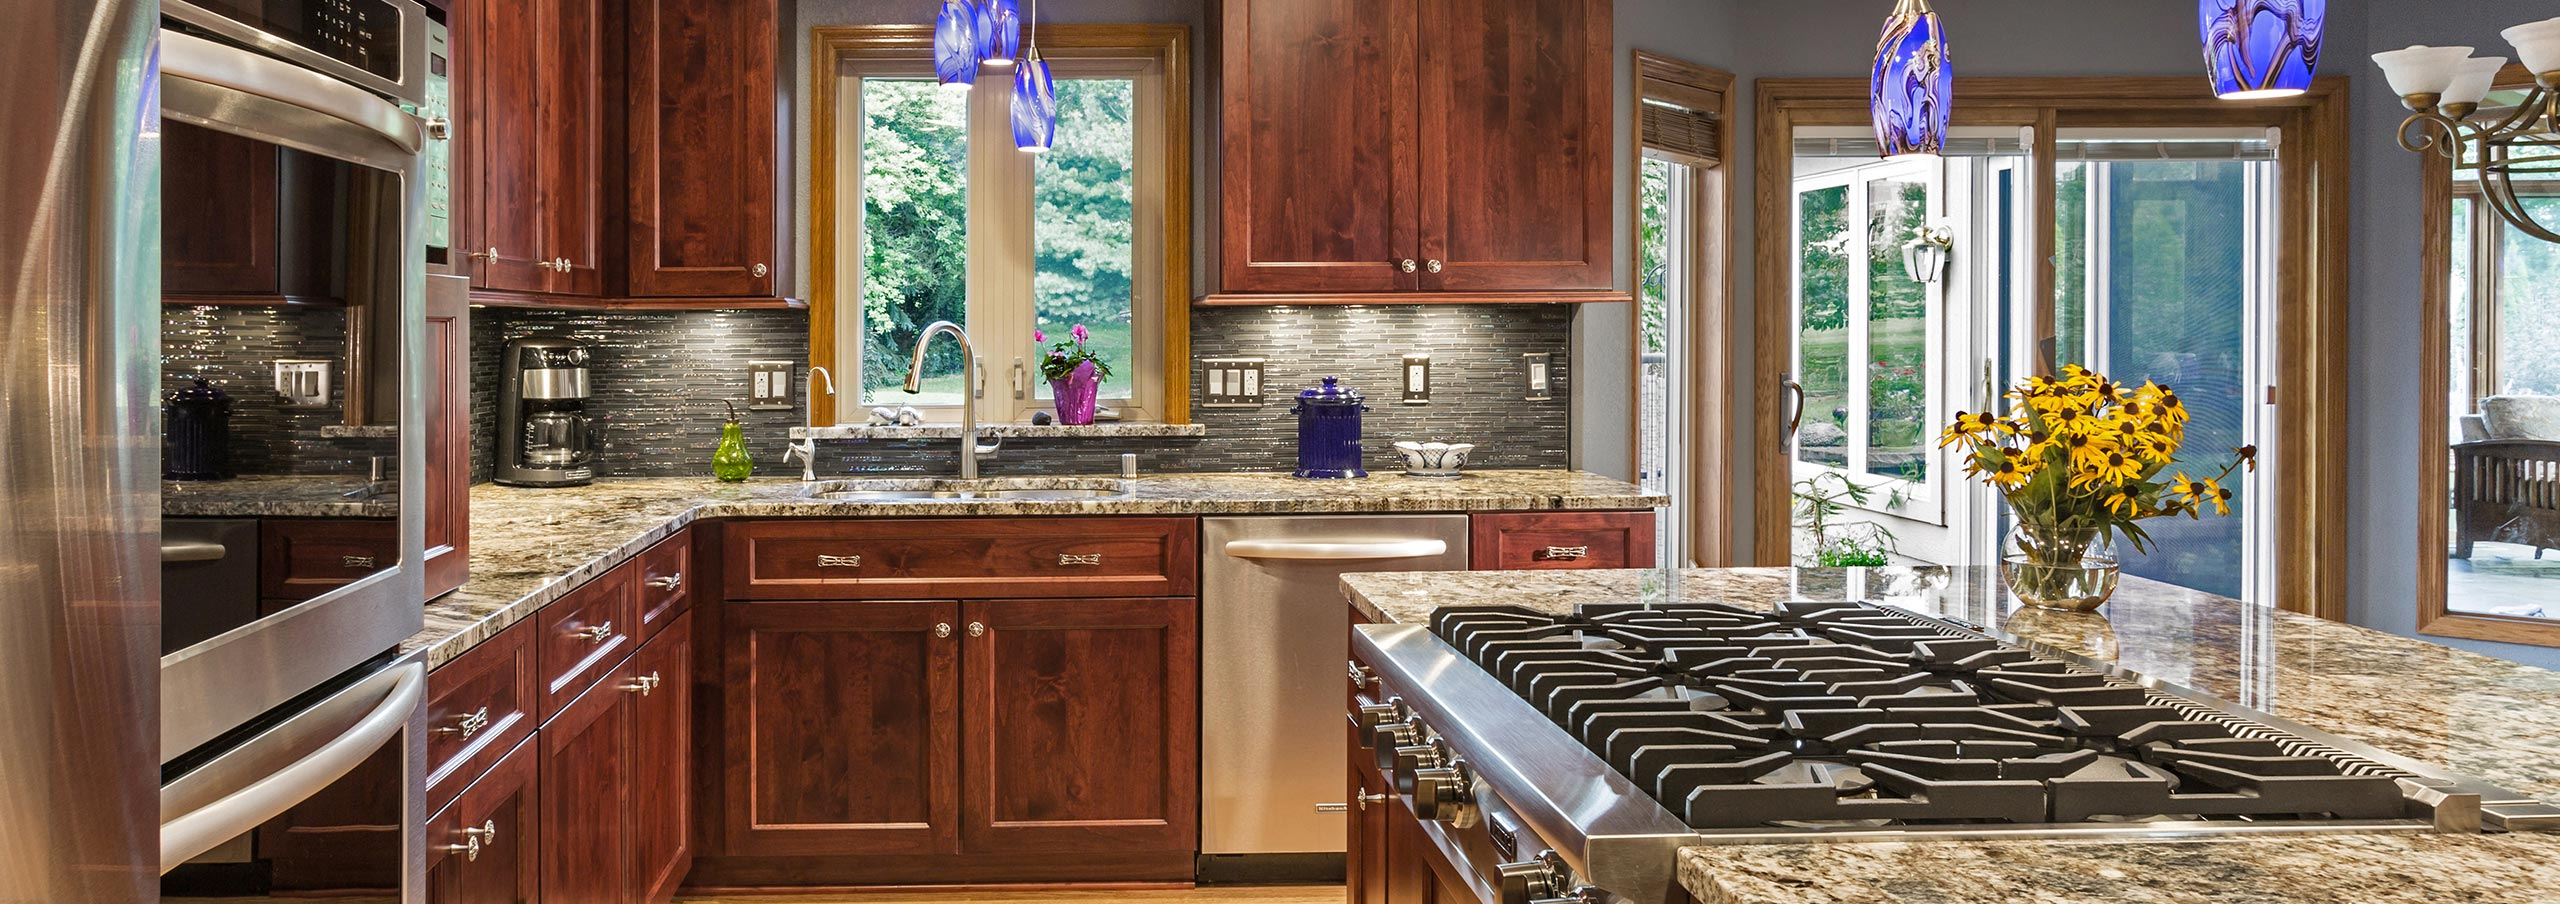 waukesha kitchen remodel with viking appliances